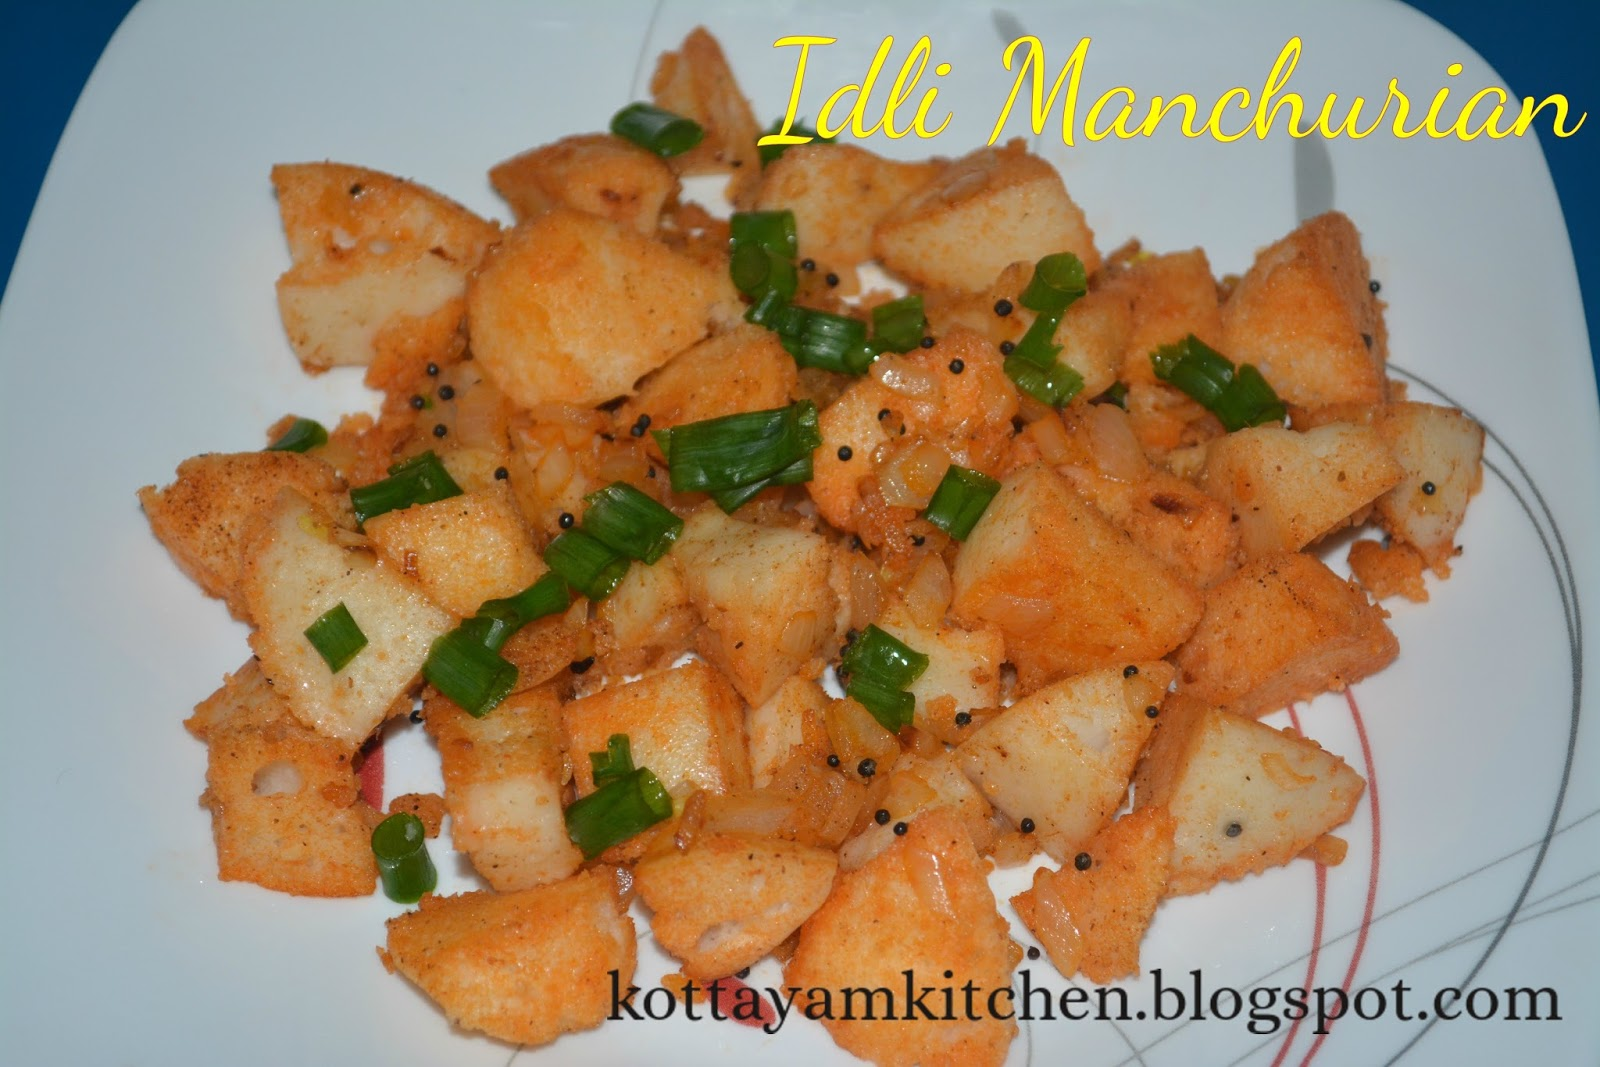 Idli manchurian without oil recipe idli recipes idli make over1 idli is the south indian break fast dish made by using fermented ground rice and urad dal batter in a steamer it doesnt use any oil for making idly its forumfinder Gallery